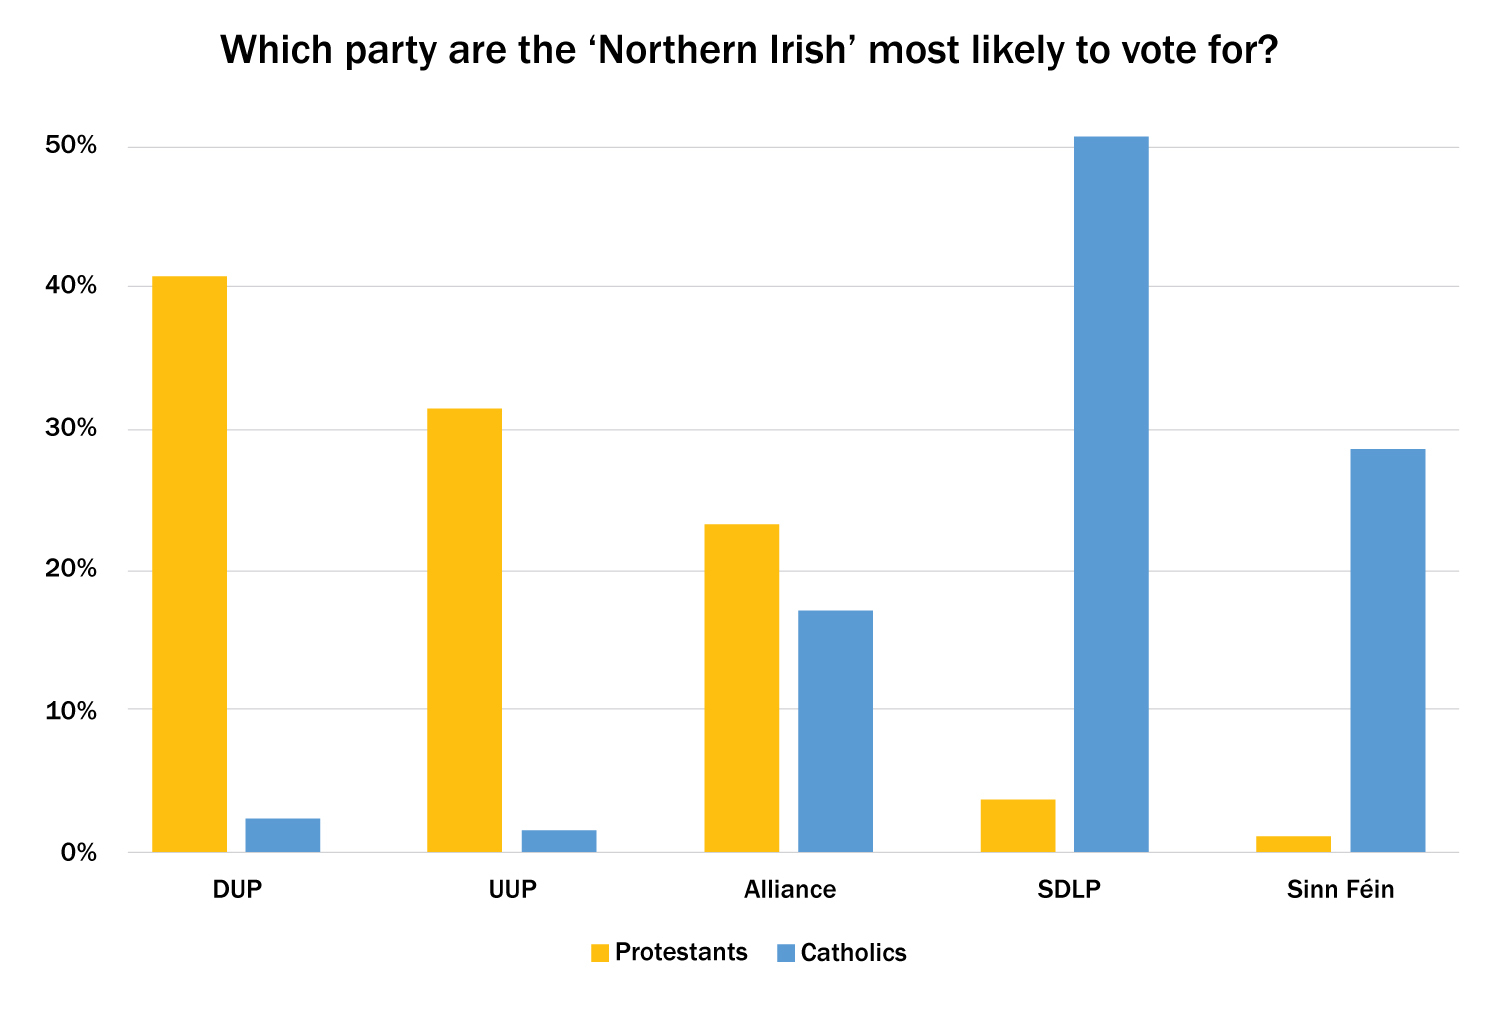 Image titleFigure 4: Showing the party preferences among Catholic and Protestant Northern Irish identifiers only (Ipsos, 2015).